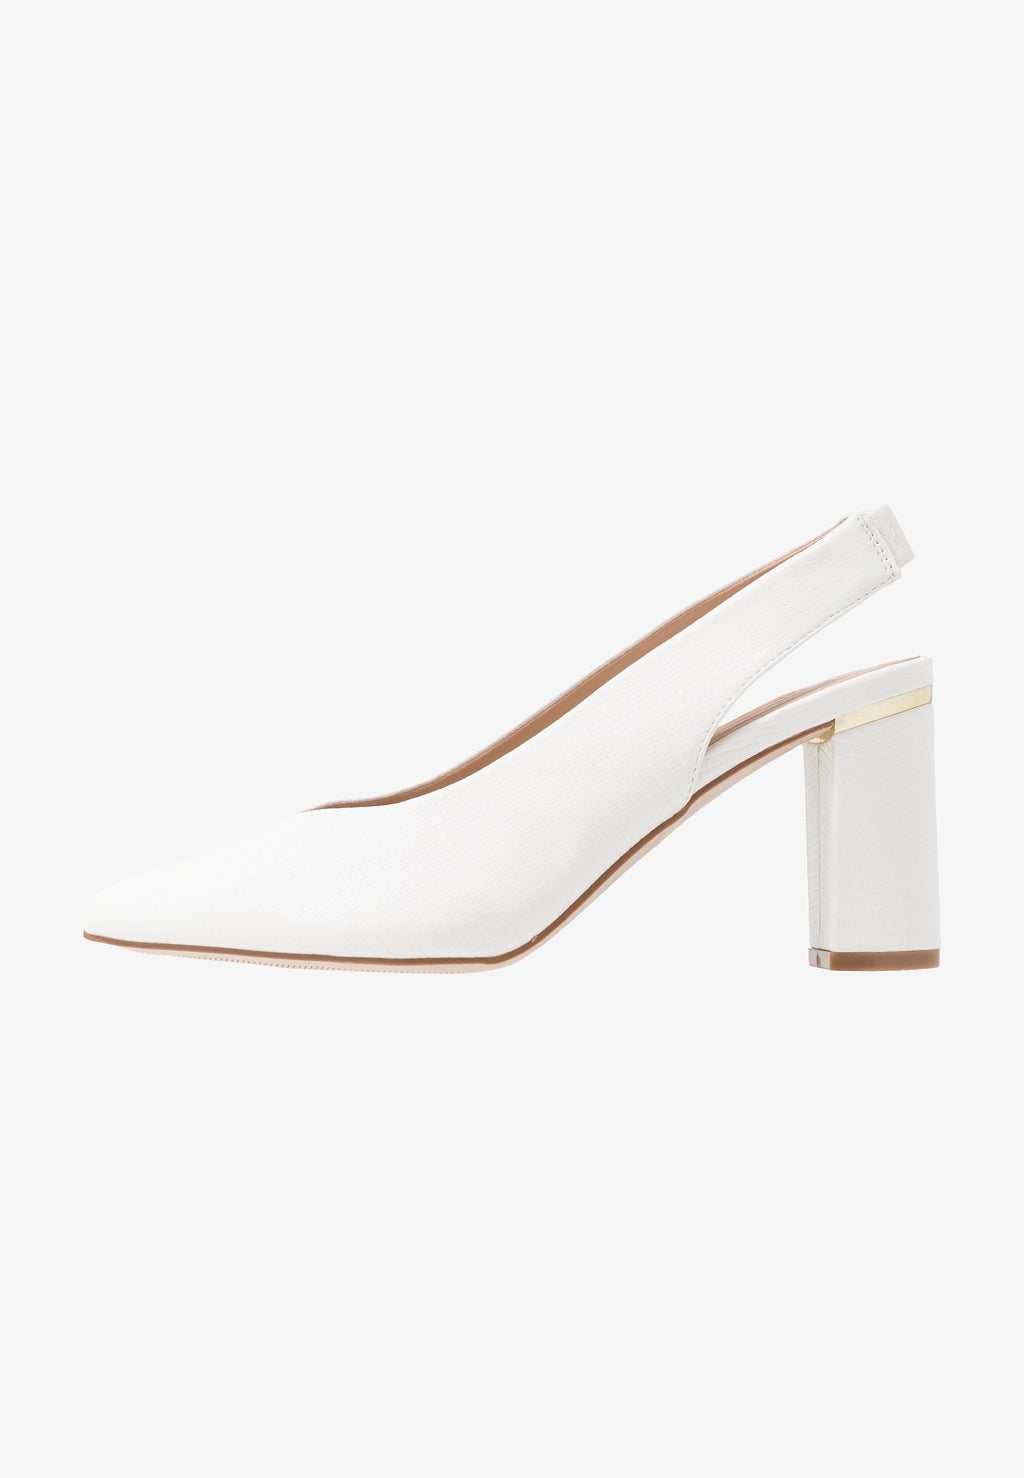 DOROTHY PERKINS WHITE EMILY SLINGBACK COURT SHOES